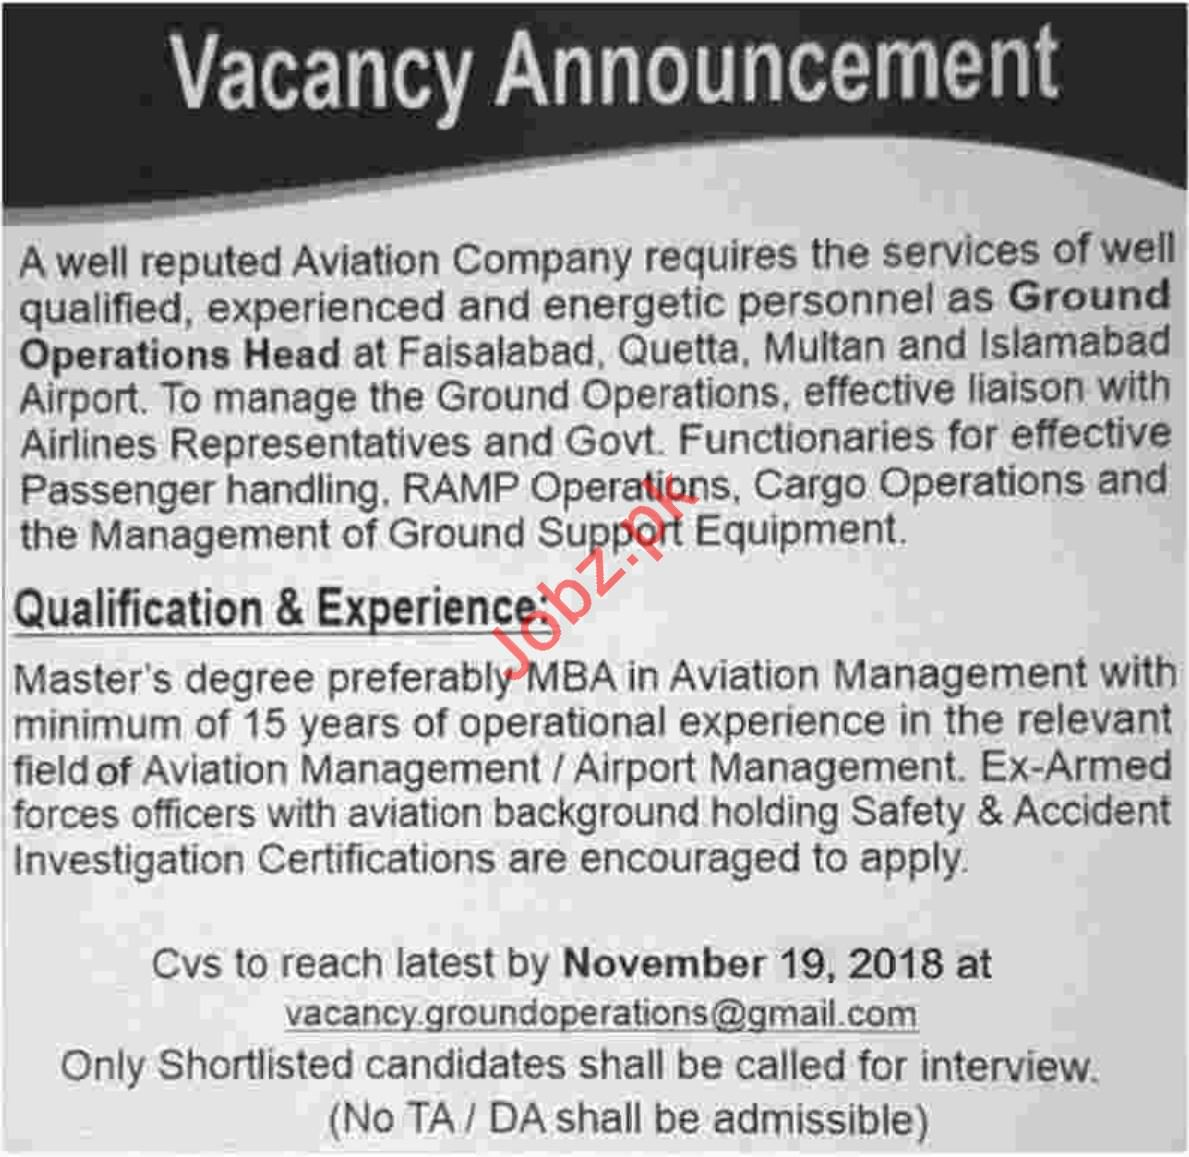 Ground Operations Head for Aviation Company